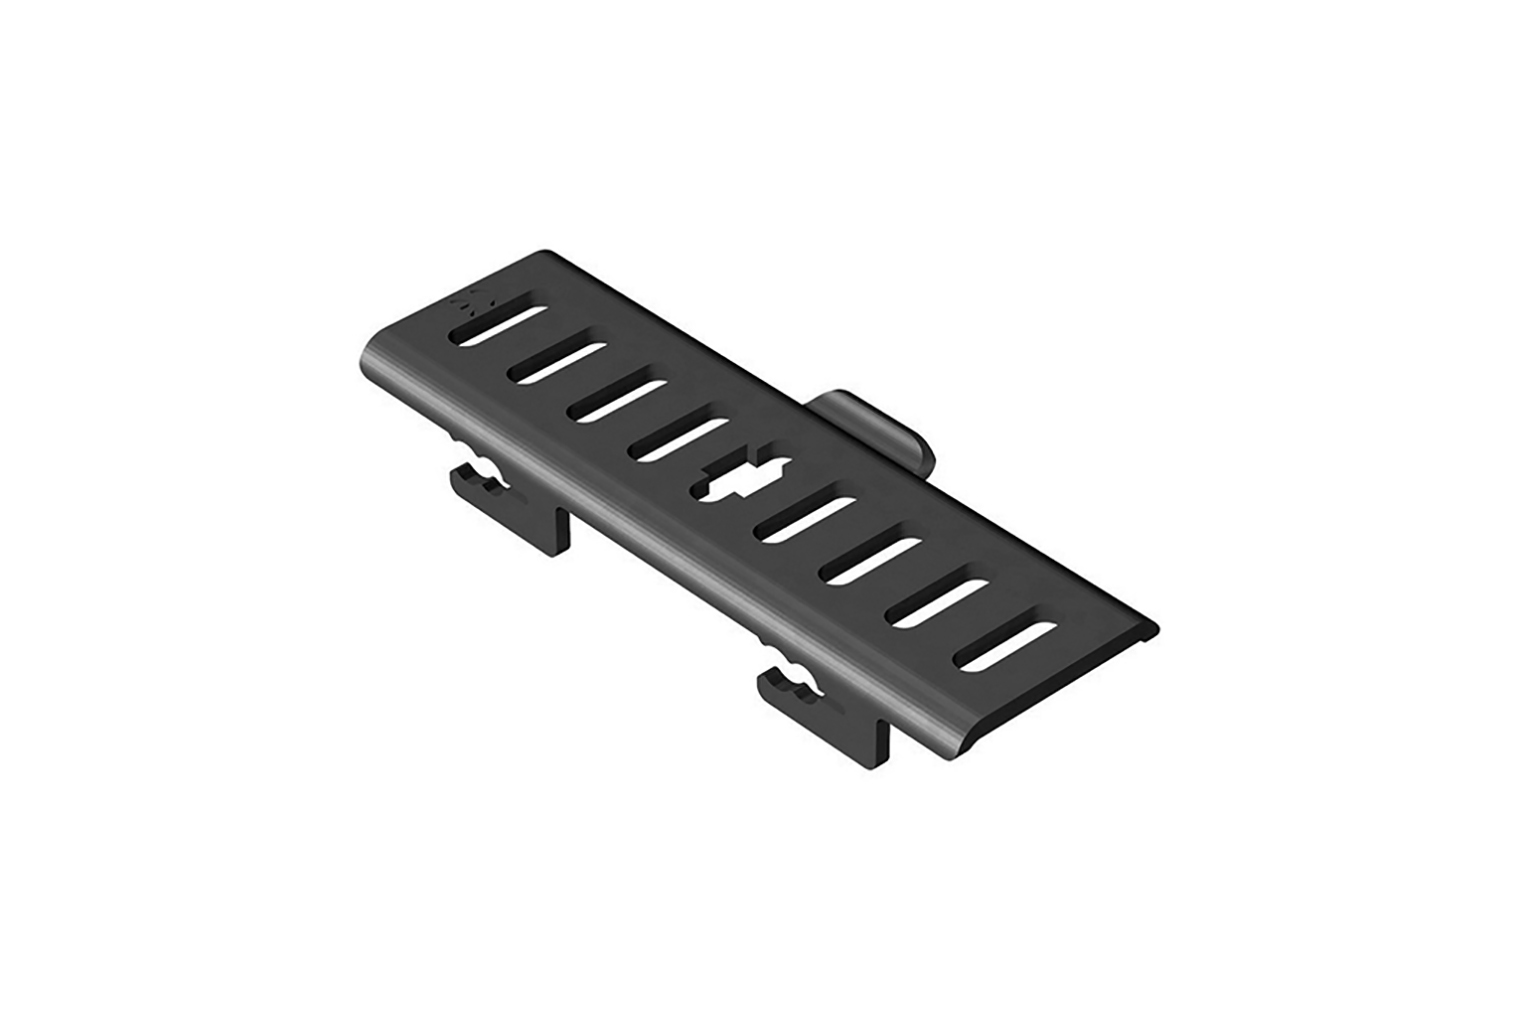 Cable Tie Clip for Pemsa Rejiband Wire Mesh Cable Tray Image